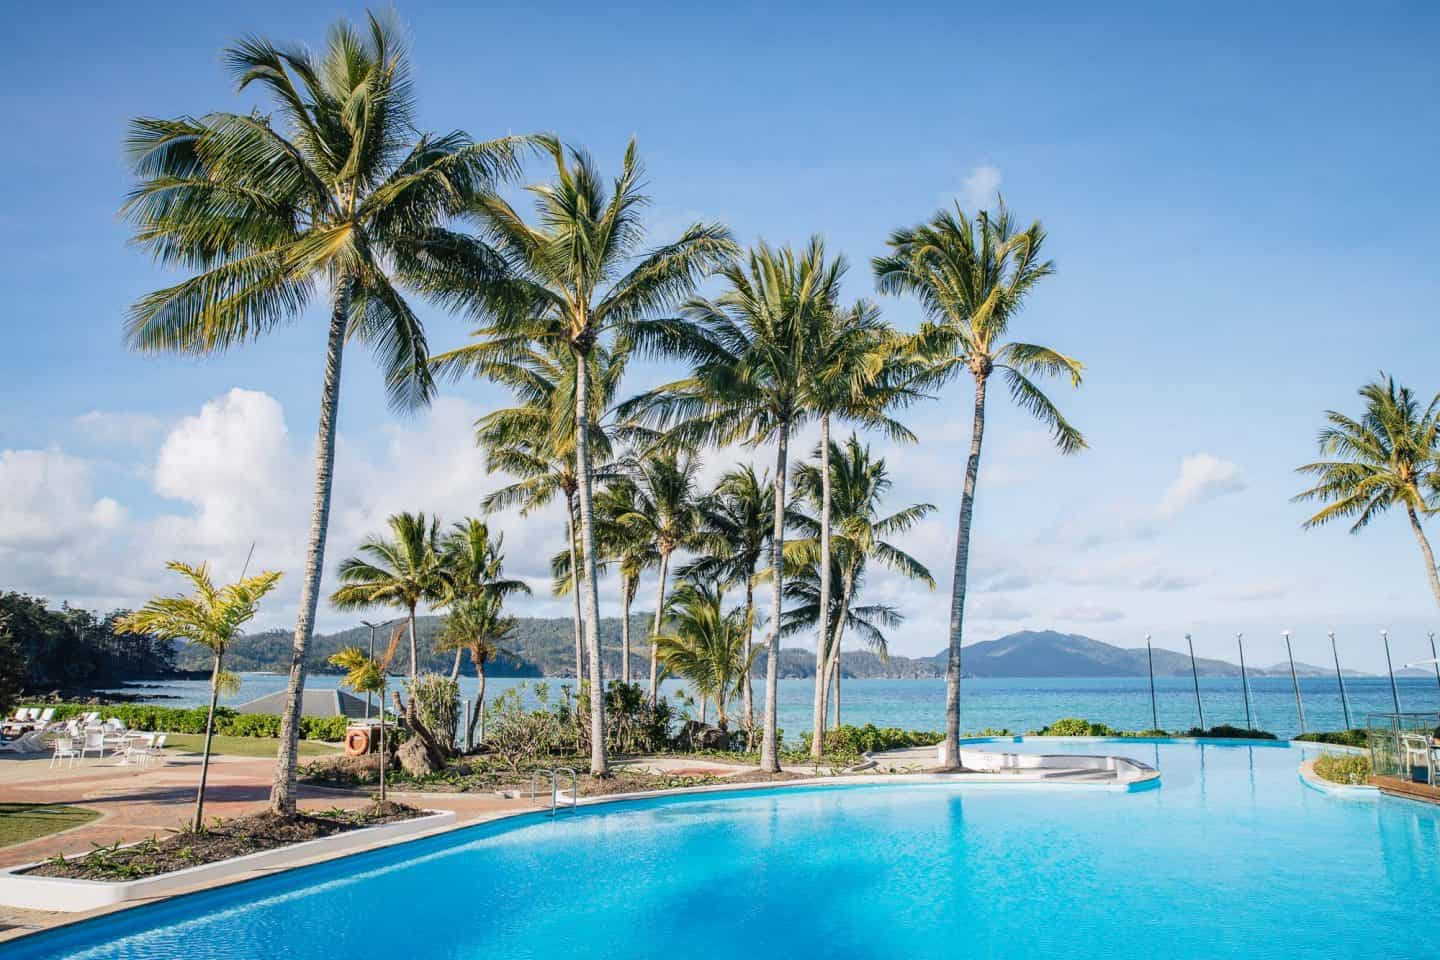 hamilton island, things to do in hamilton island, hamilton island things to do, hamilton island activities, what to do on hamilton island